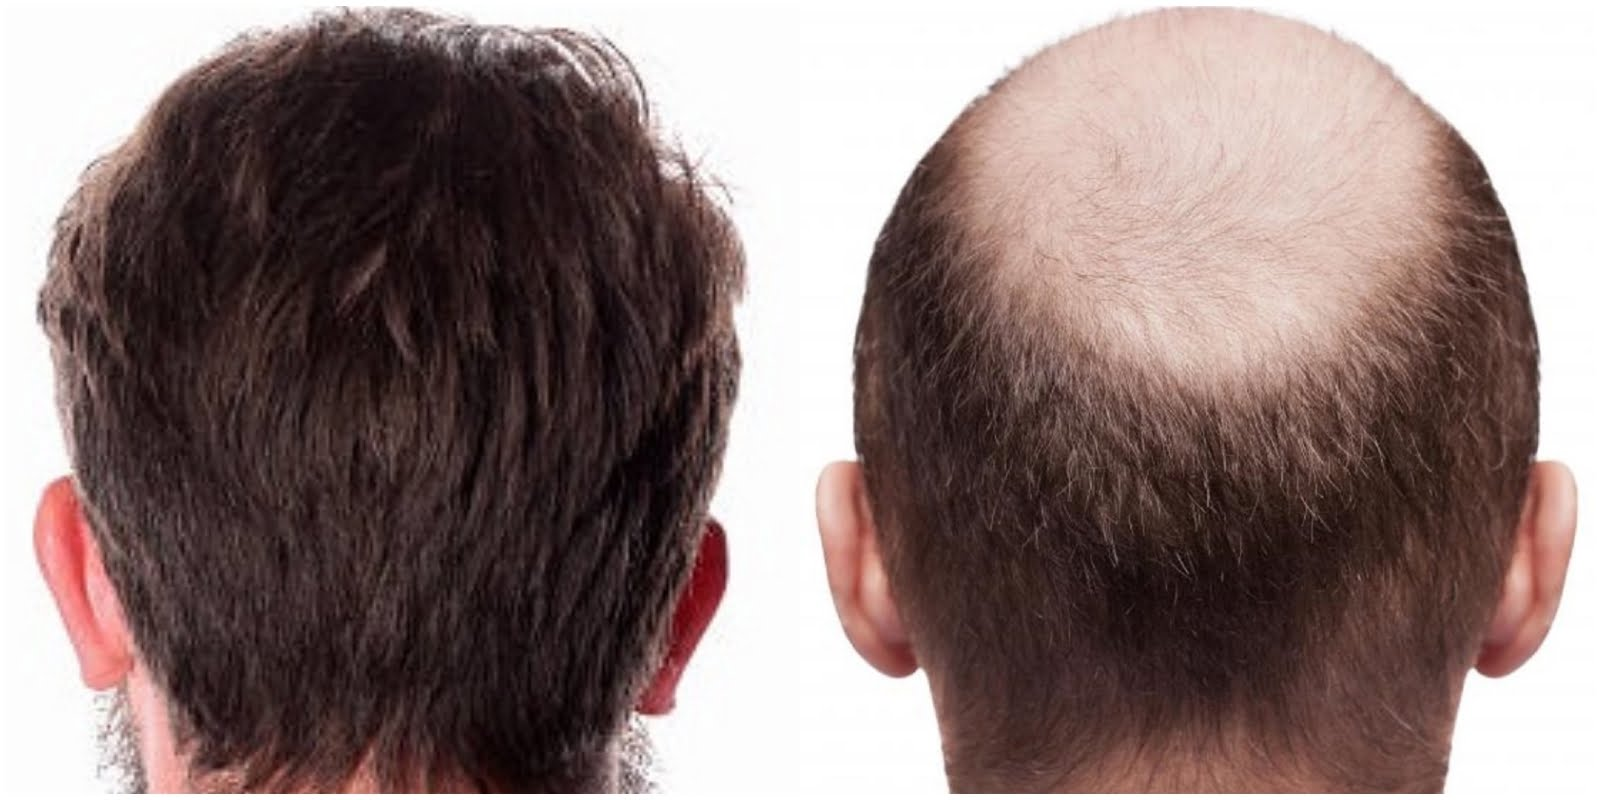 What Happens To Transplanted Hair?